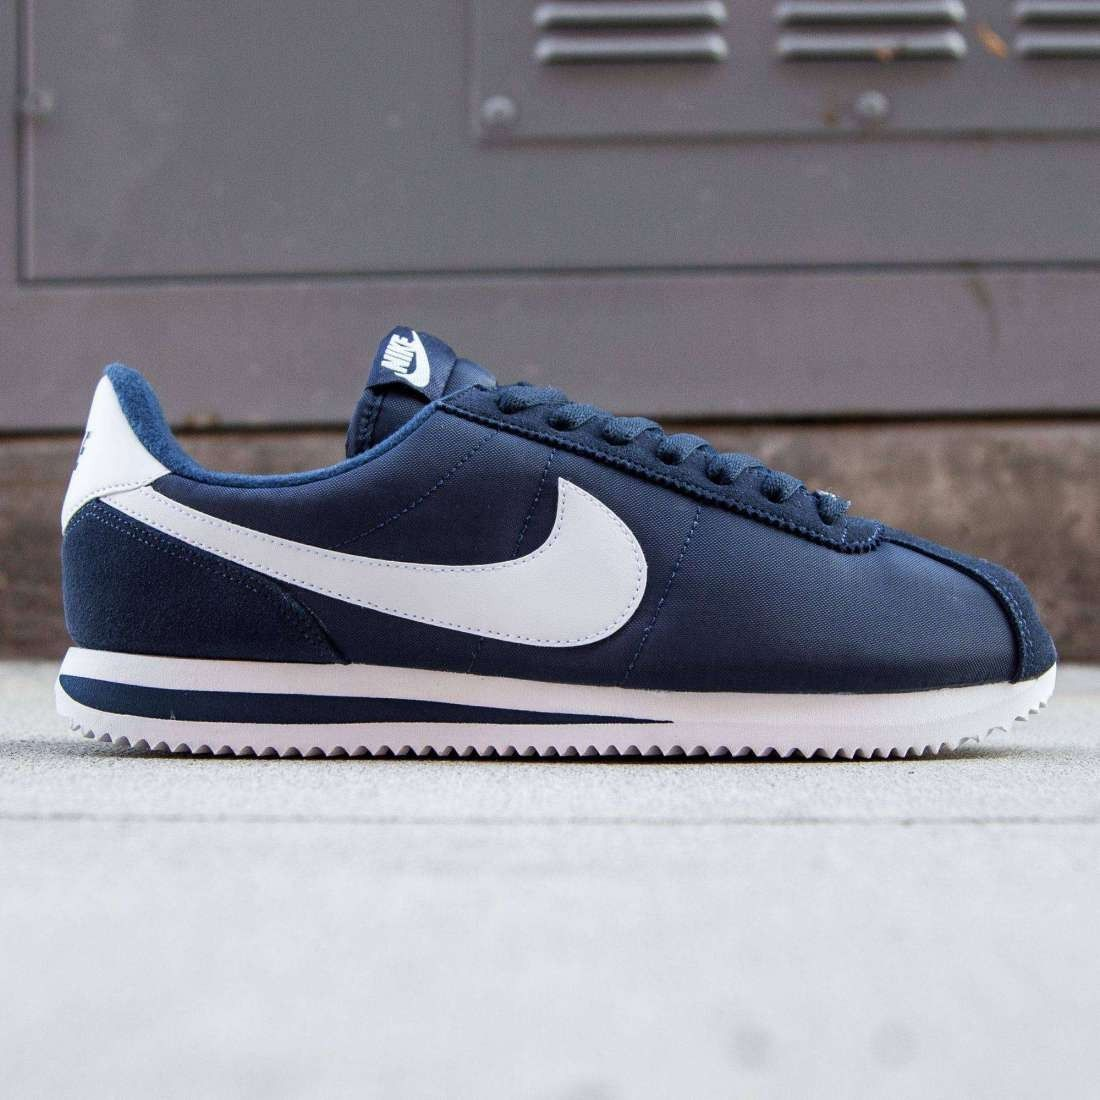 nike cortez navy blue and white